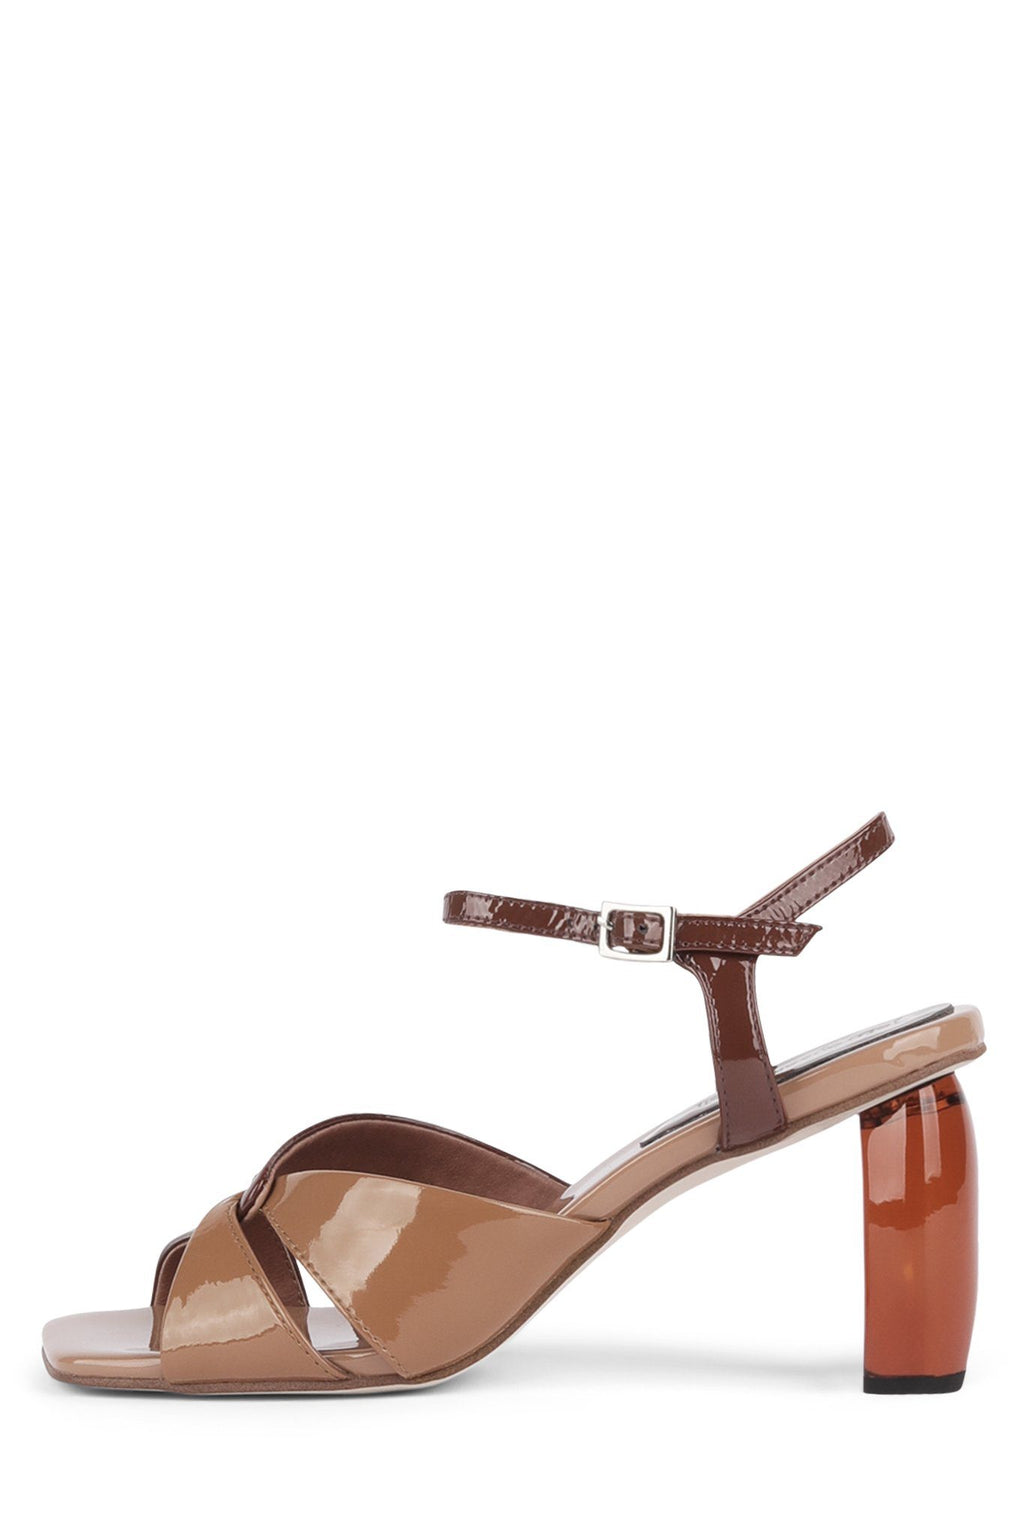 ANTIQUE-2 Heeled Sandal YYH Nude Pat Multi Brown 6